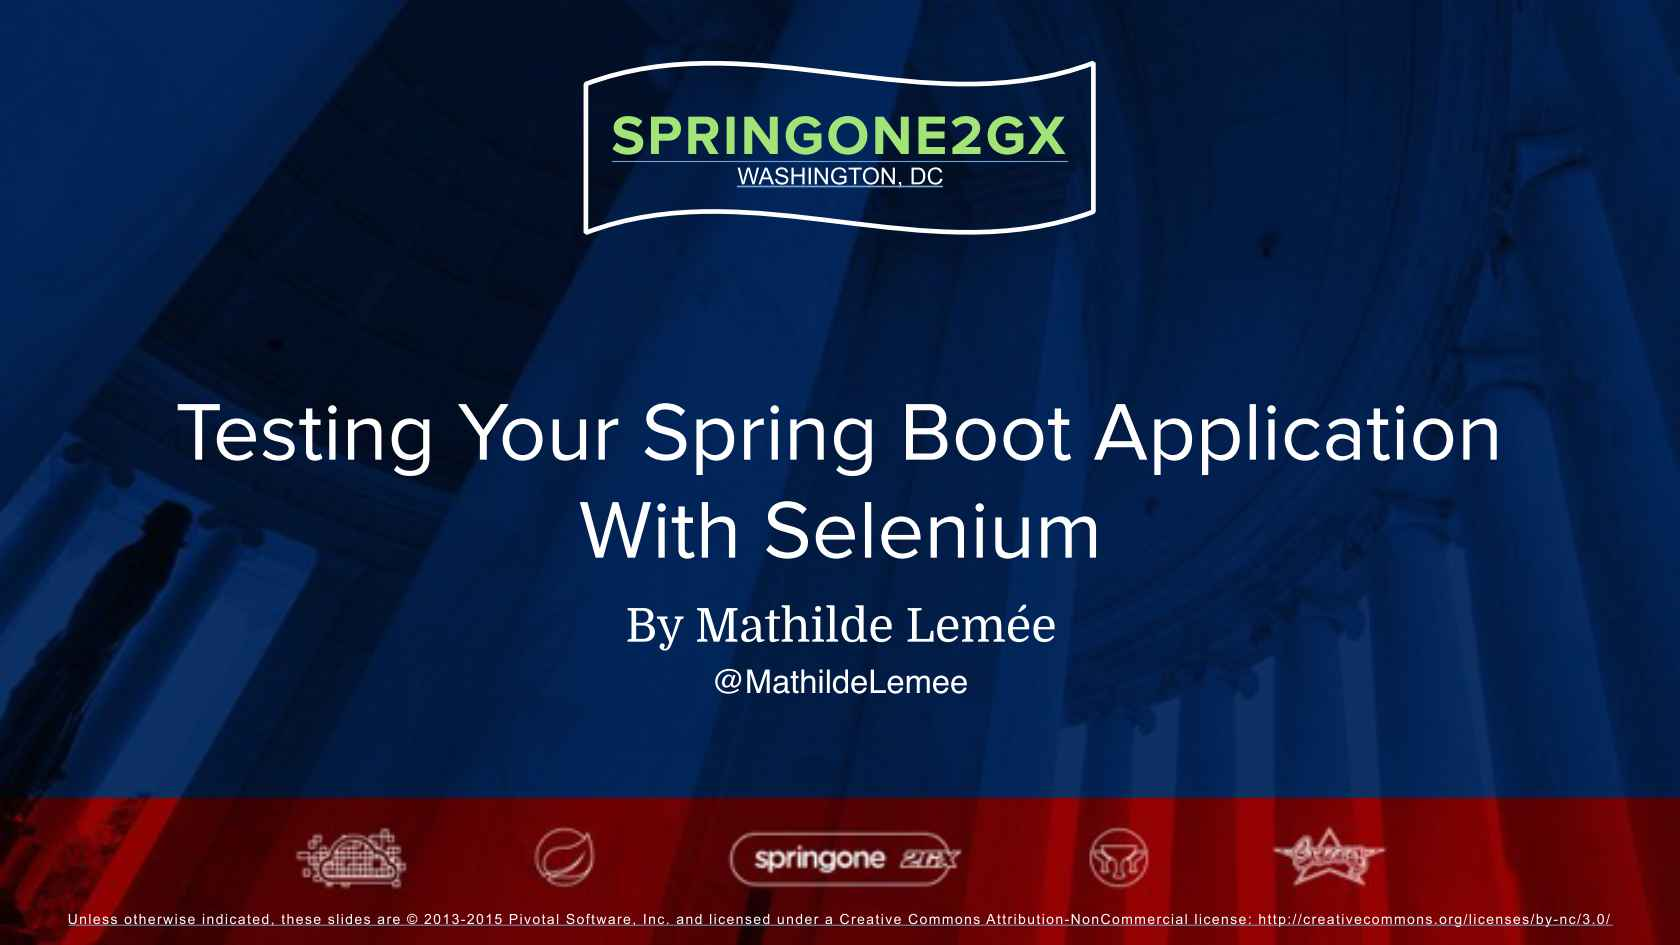 Testing your Spring Boot Application with Selenium